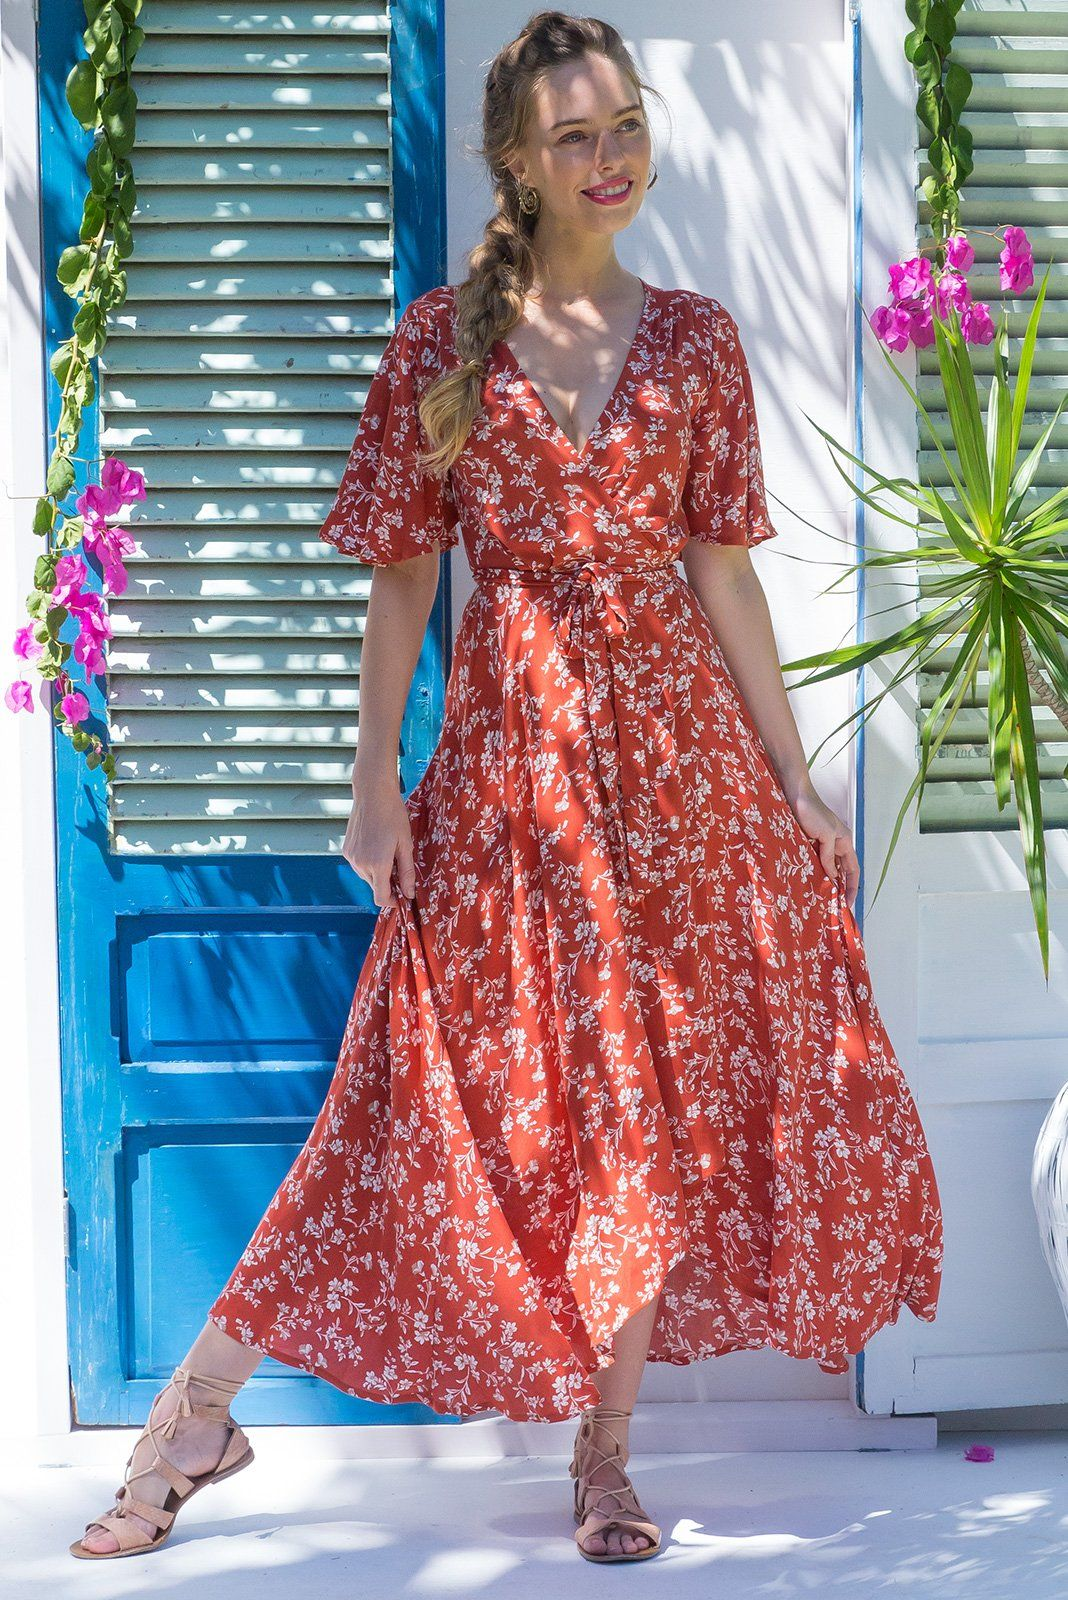 Saffron Tanna Tan Maxi Wrap Dress In Bright Terracotta With A Ditzy Floral Print On Crinkle Rayon And With A Flutter Sleeve Dresses Maxi Wrap Dress Wrap Dress [ 1600 x 1068 Pixel ]